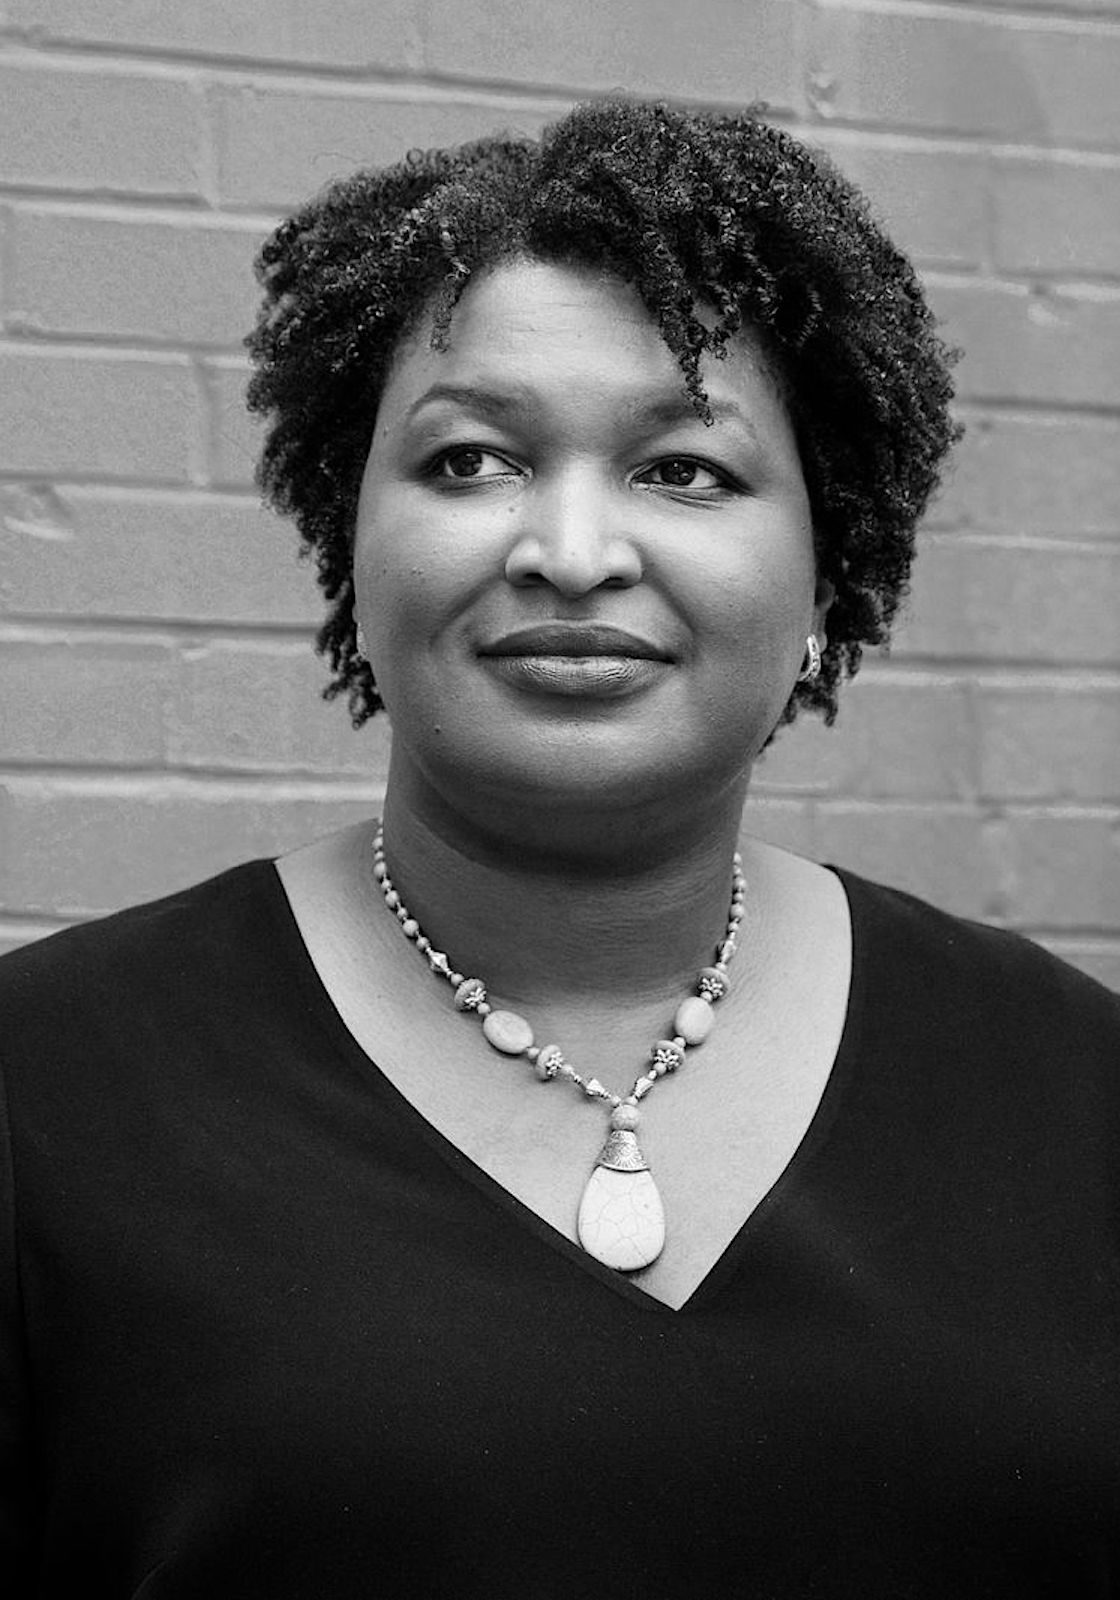 Stacey Abrams, Willoughby Avenue, The Five Fifths, KOLUMN Magazine, KOLUMN, African American Politics, Black in Politics